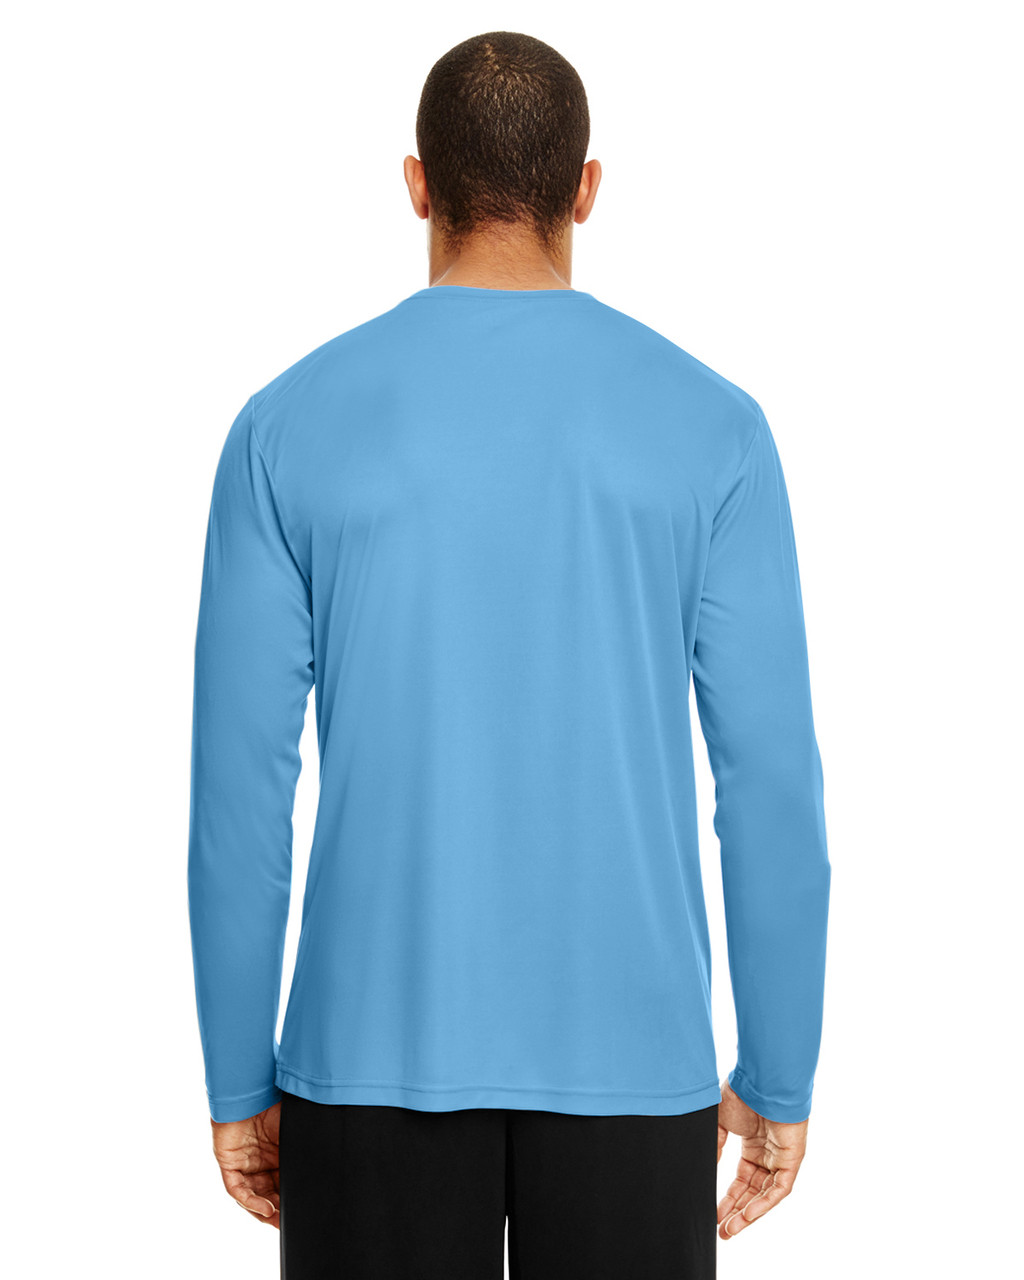 Sport Light Blue, Back - TT11L Team 365 Men's Zone Performance Long Sleeve T-Shirt | BlankClothing.ca